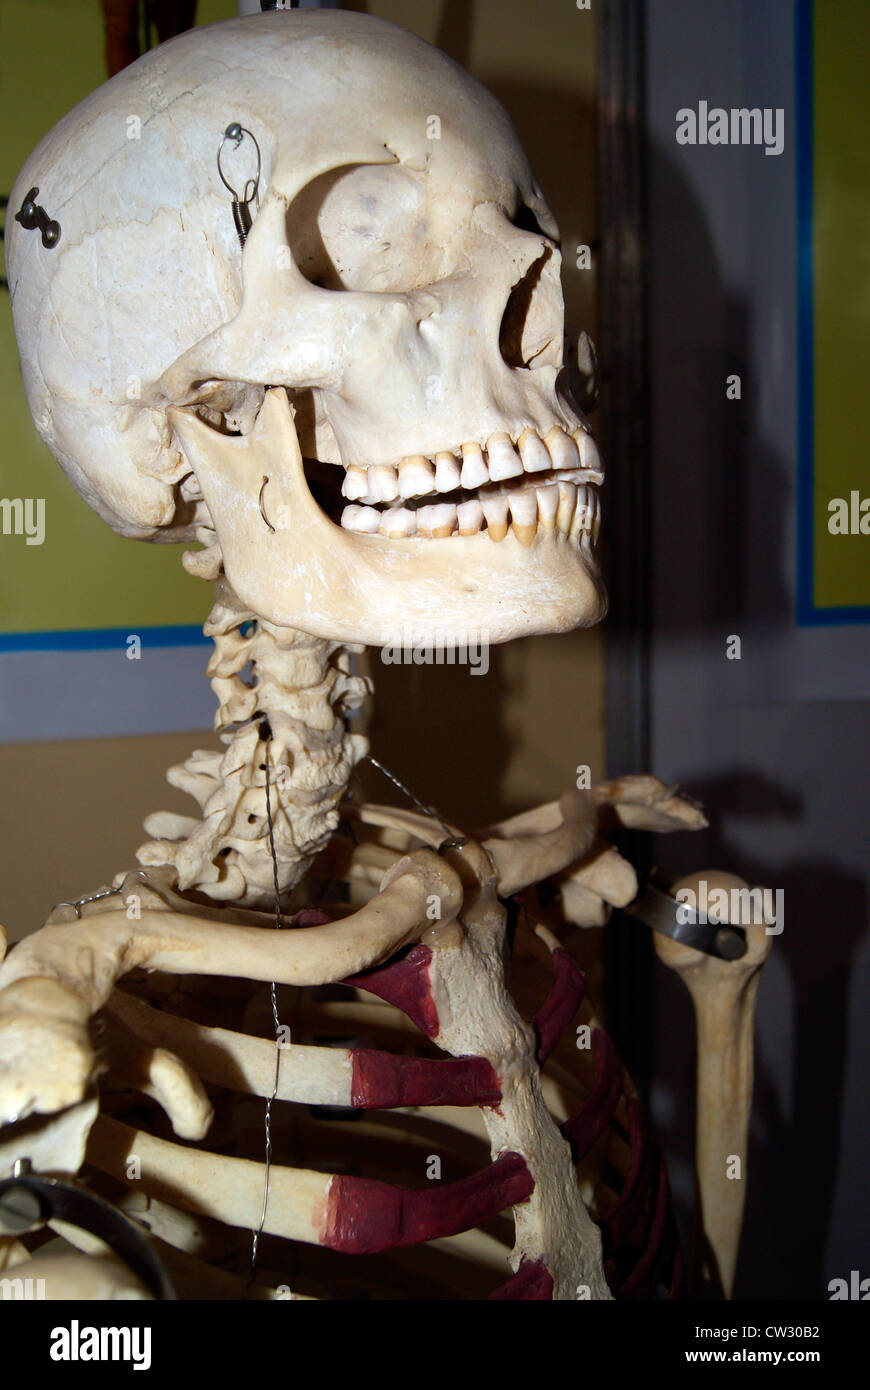 Laughing Human Skeleton Closeup Side View Of Skull Face Showing Full